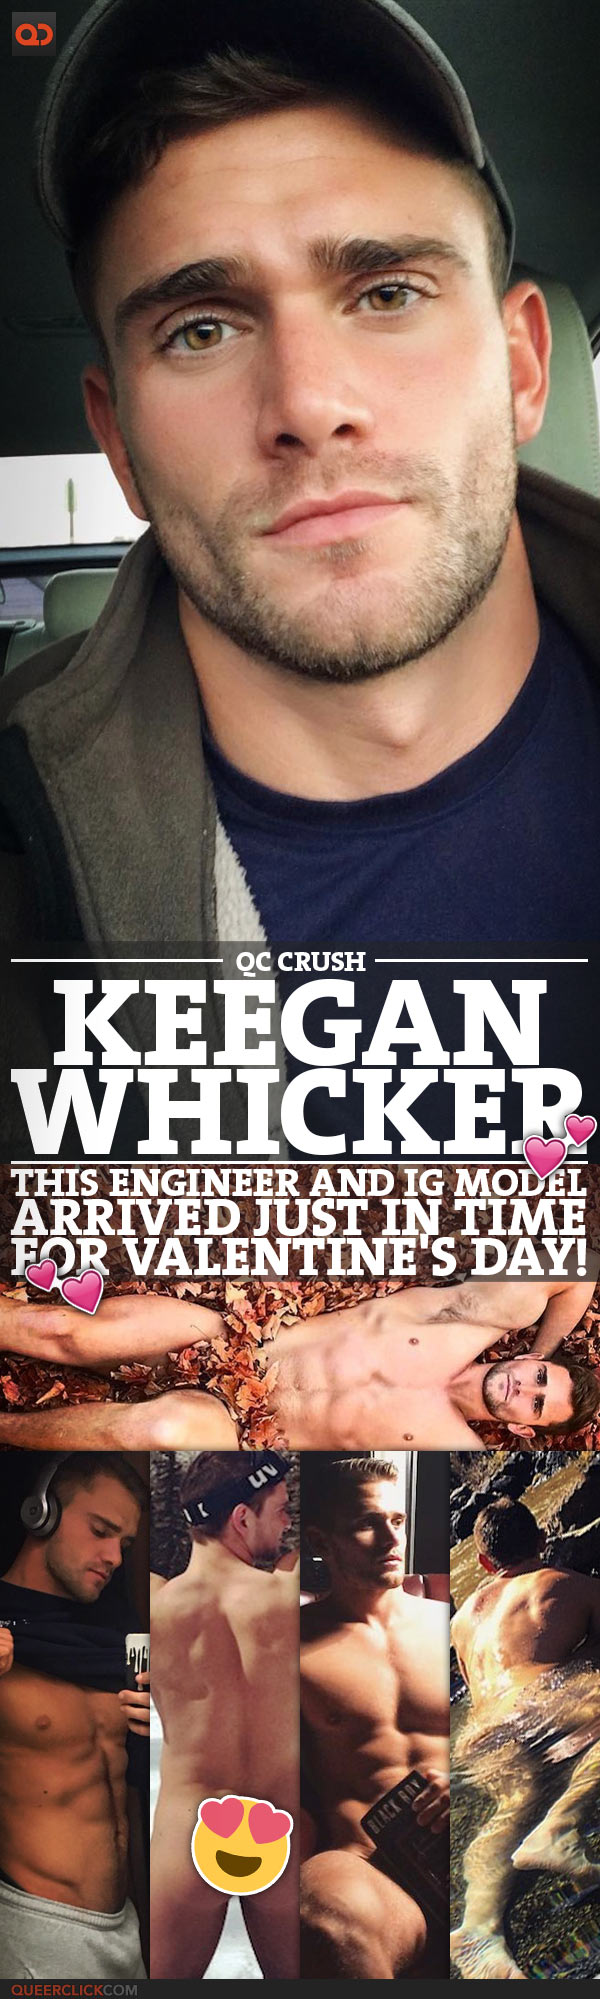 QC Crush: Meet Keegan Whicker - This Engineer And IG Model Arrived Just In Time For Valentine's Day!